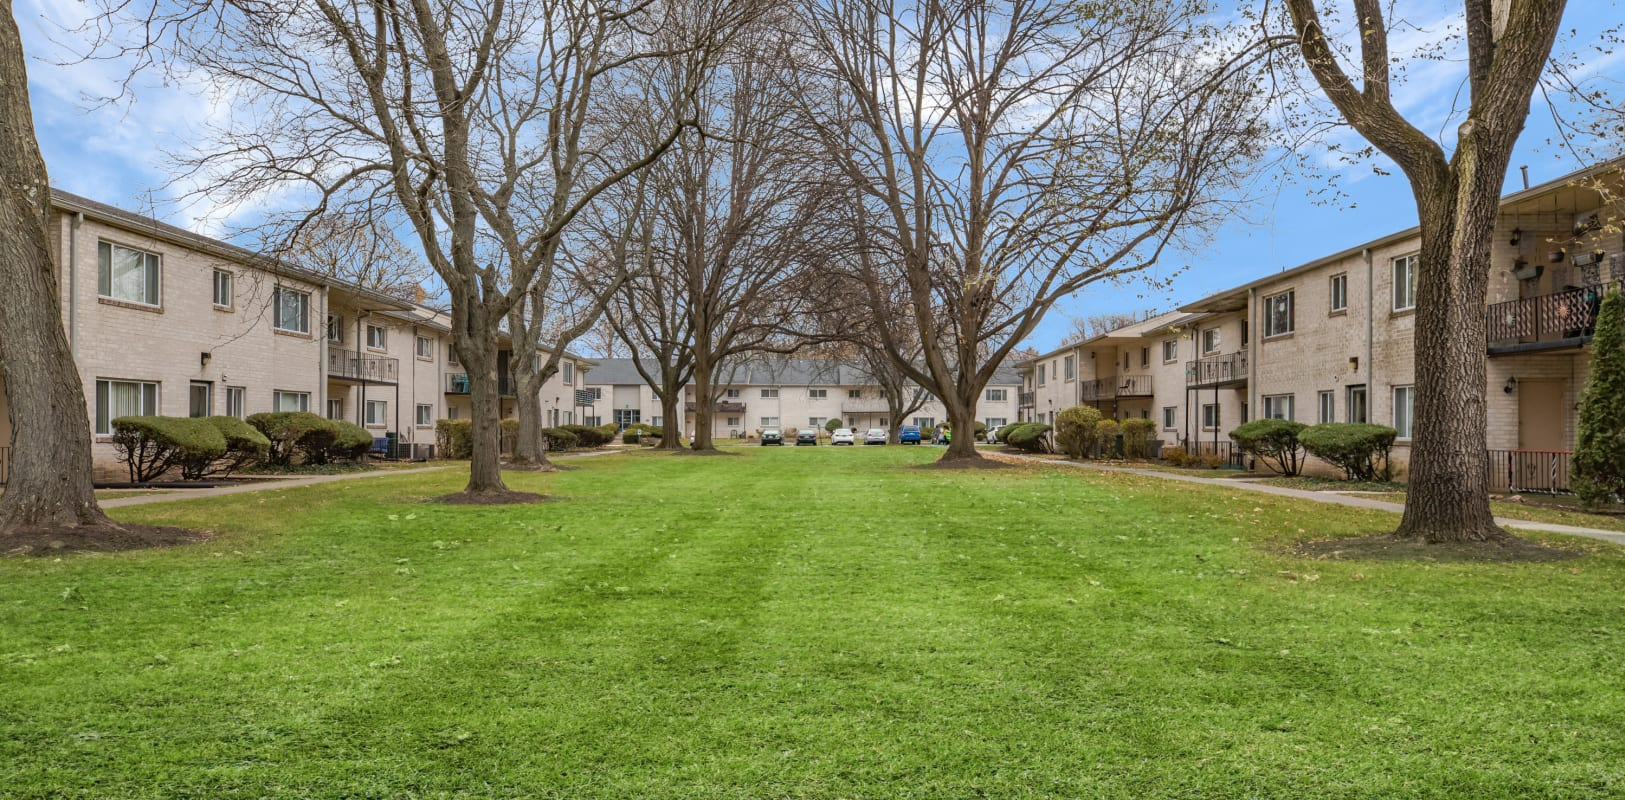 Massive lawn to enjoy with trees to provide ample shade in the summer at Penn Crest Apartments in Allentown, Pennsylvania